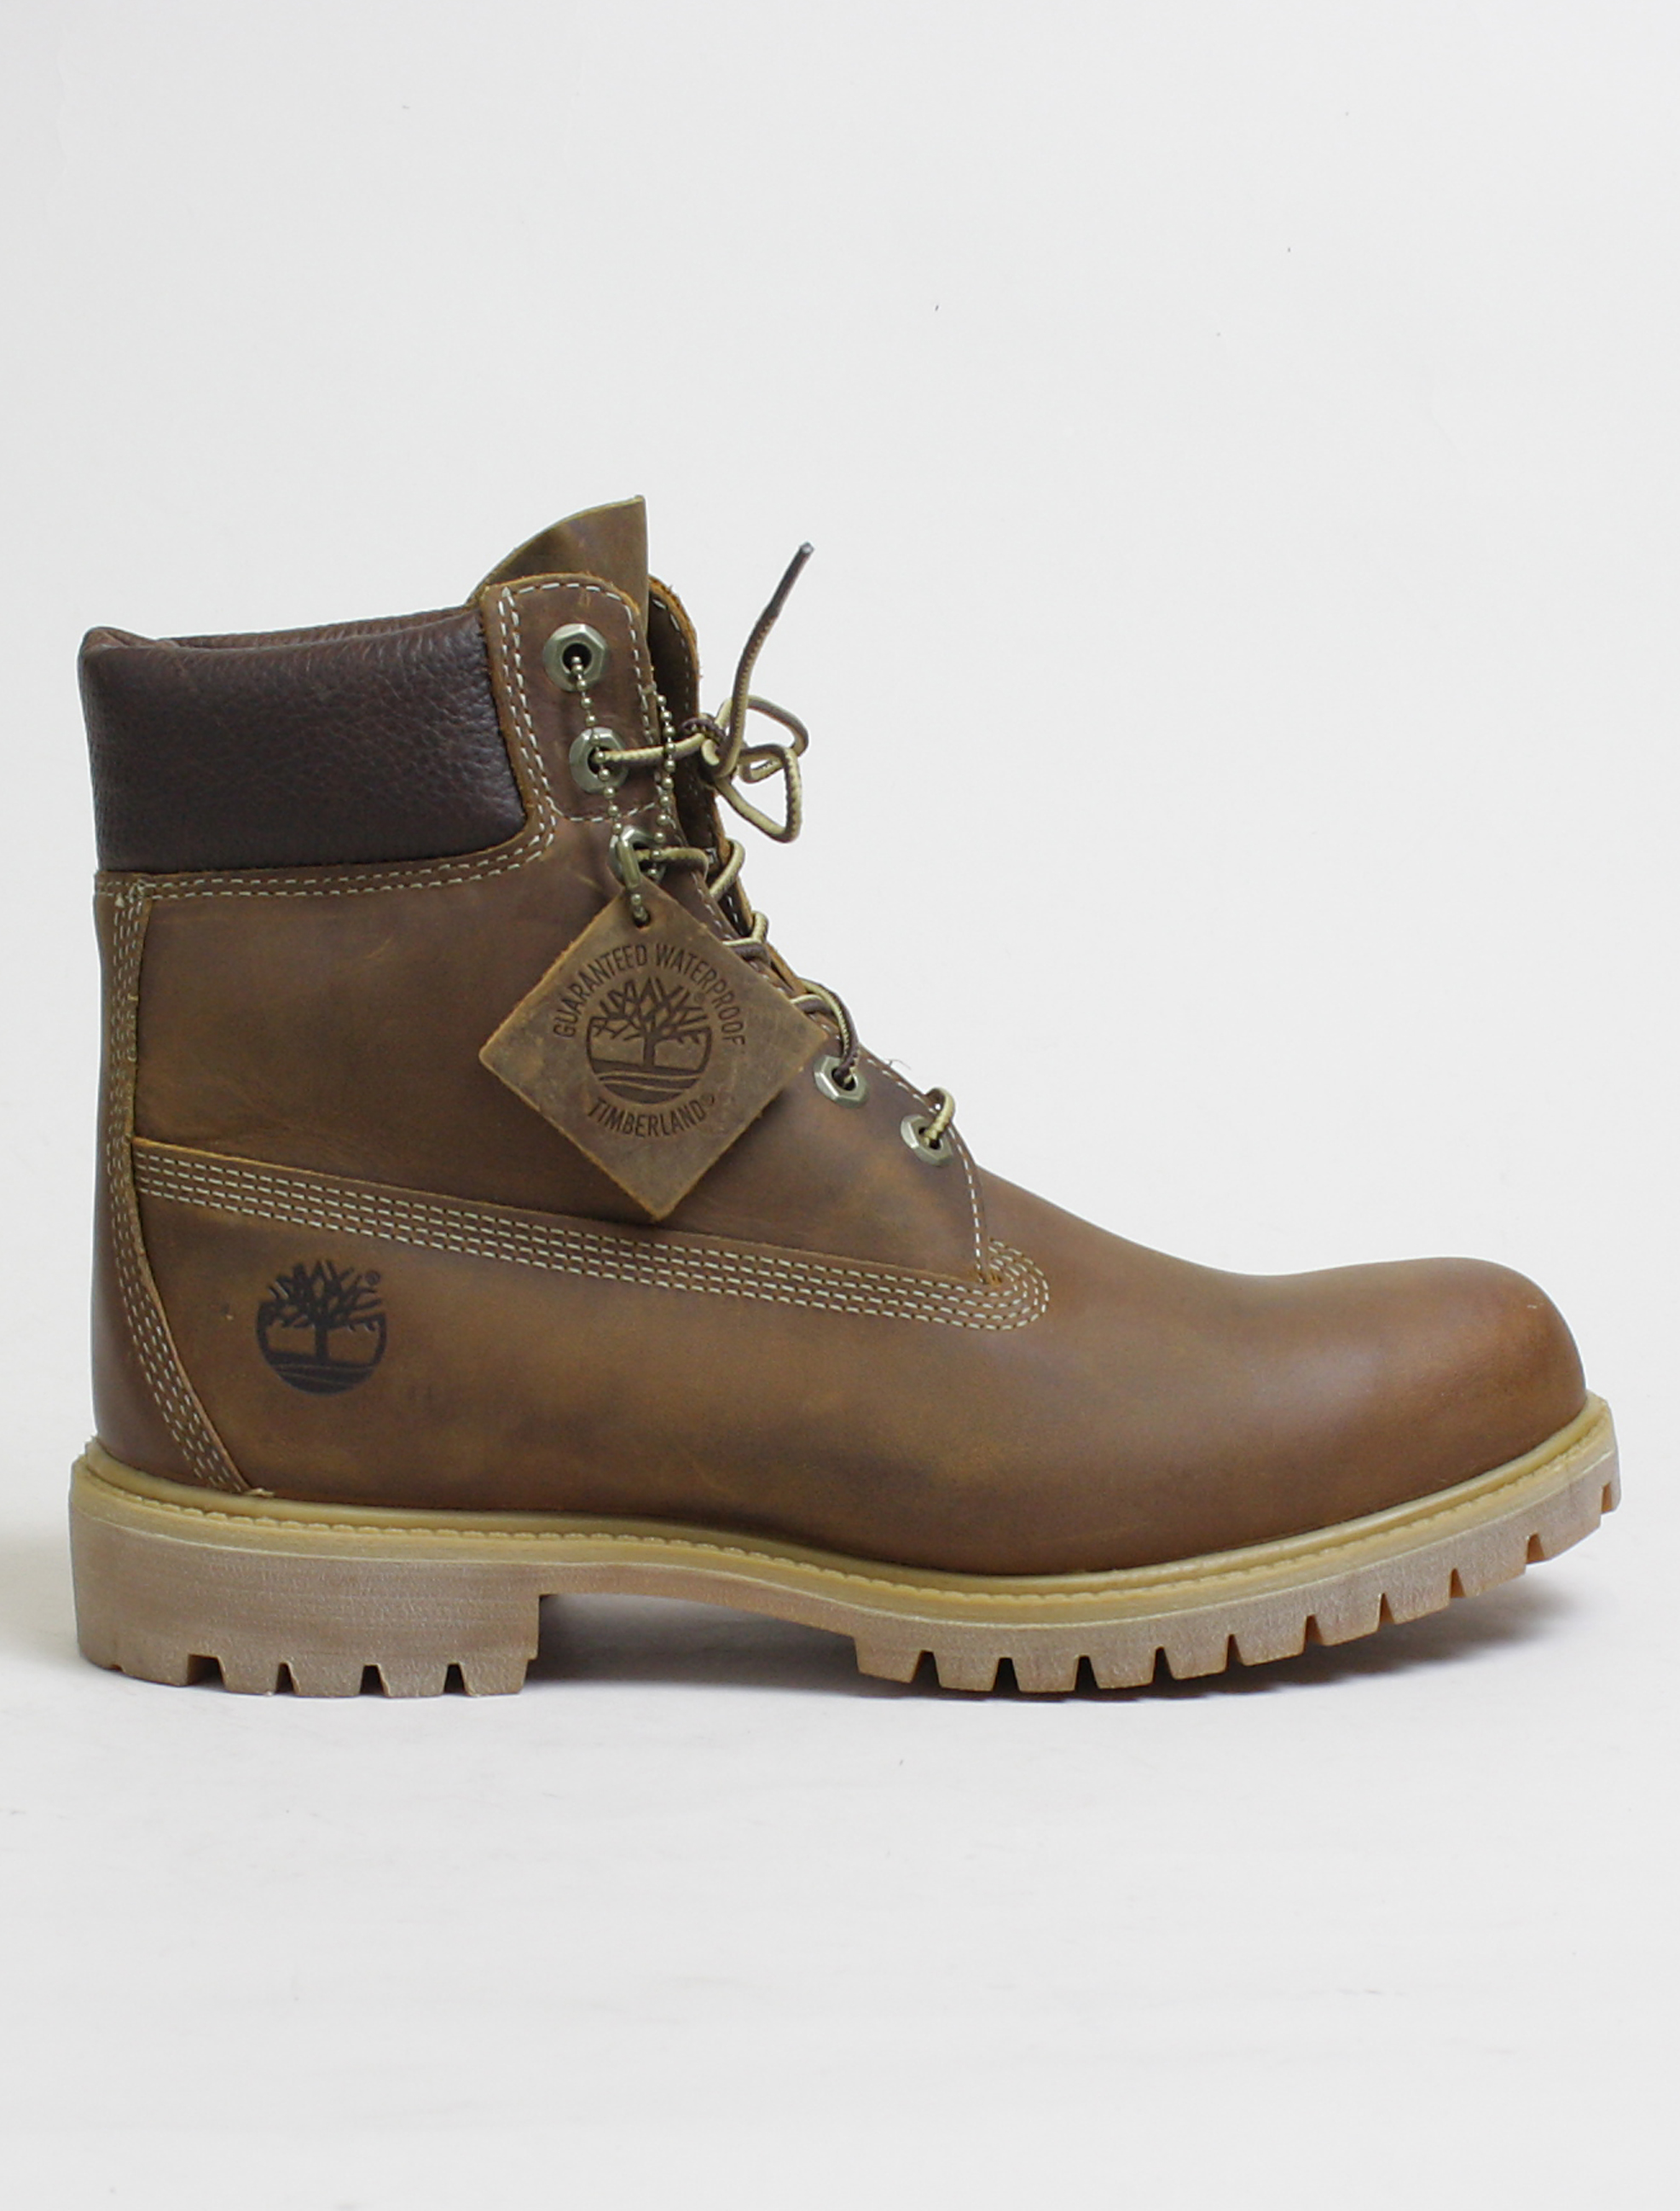 Timberland 6 inch heritage classic brown